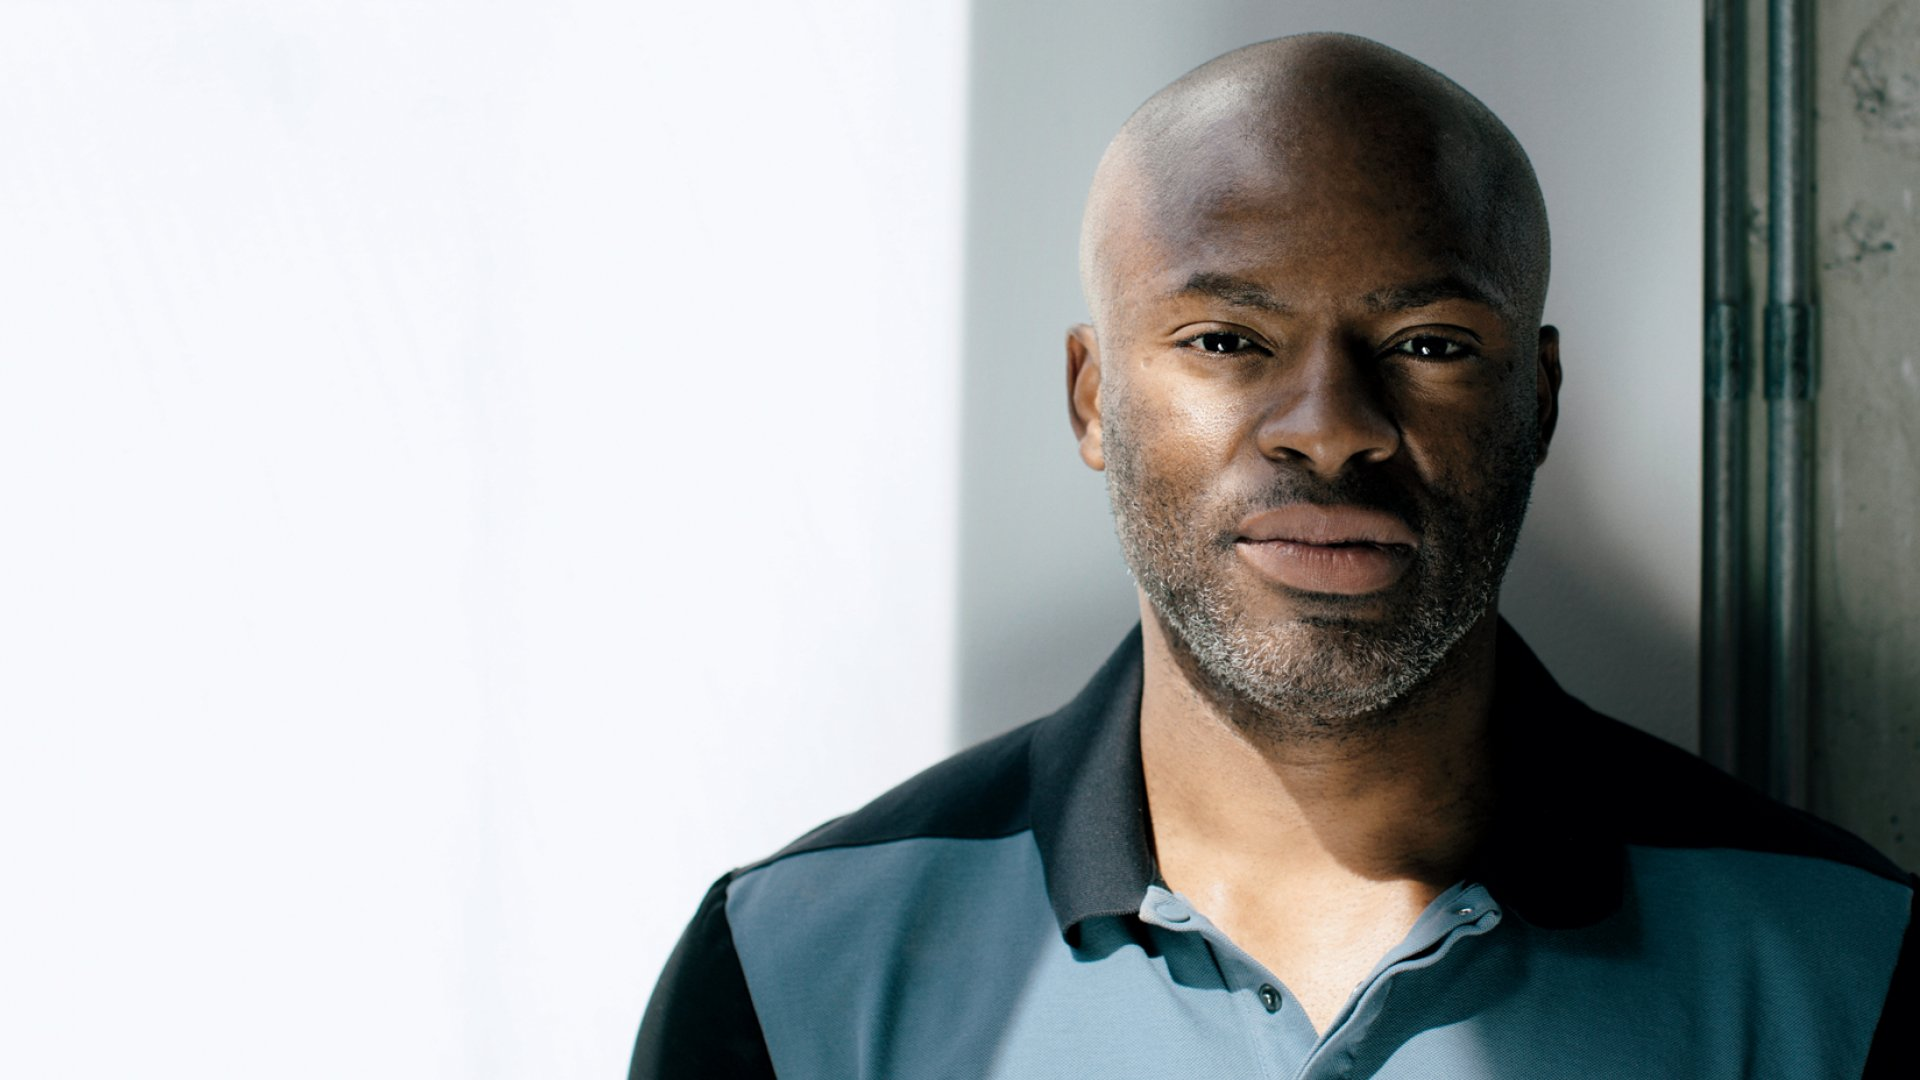 This Atlanta Founder's Secret Weapon in Building His $30 Million Company: Growing Up in Nigeria